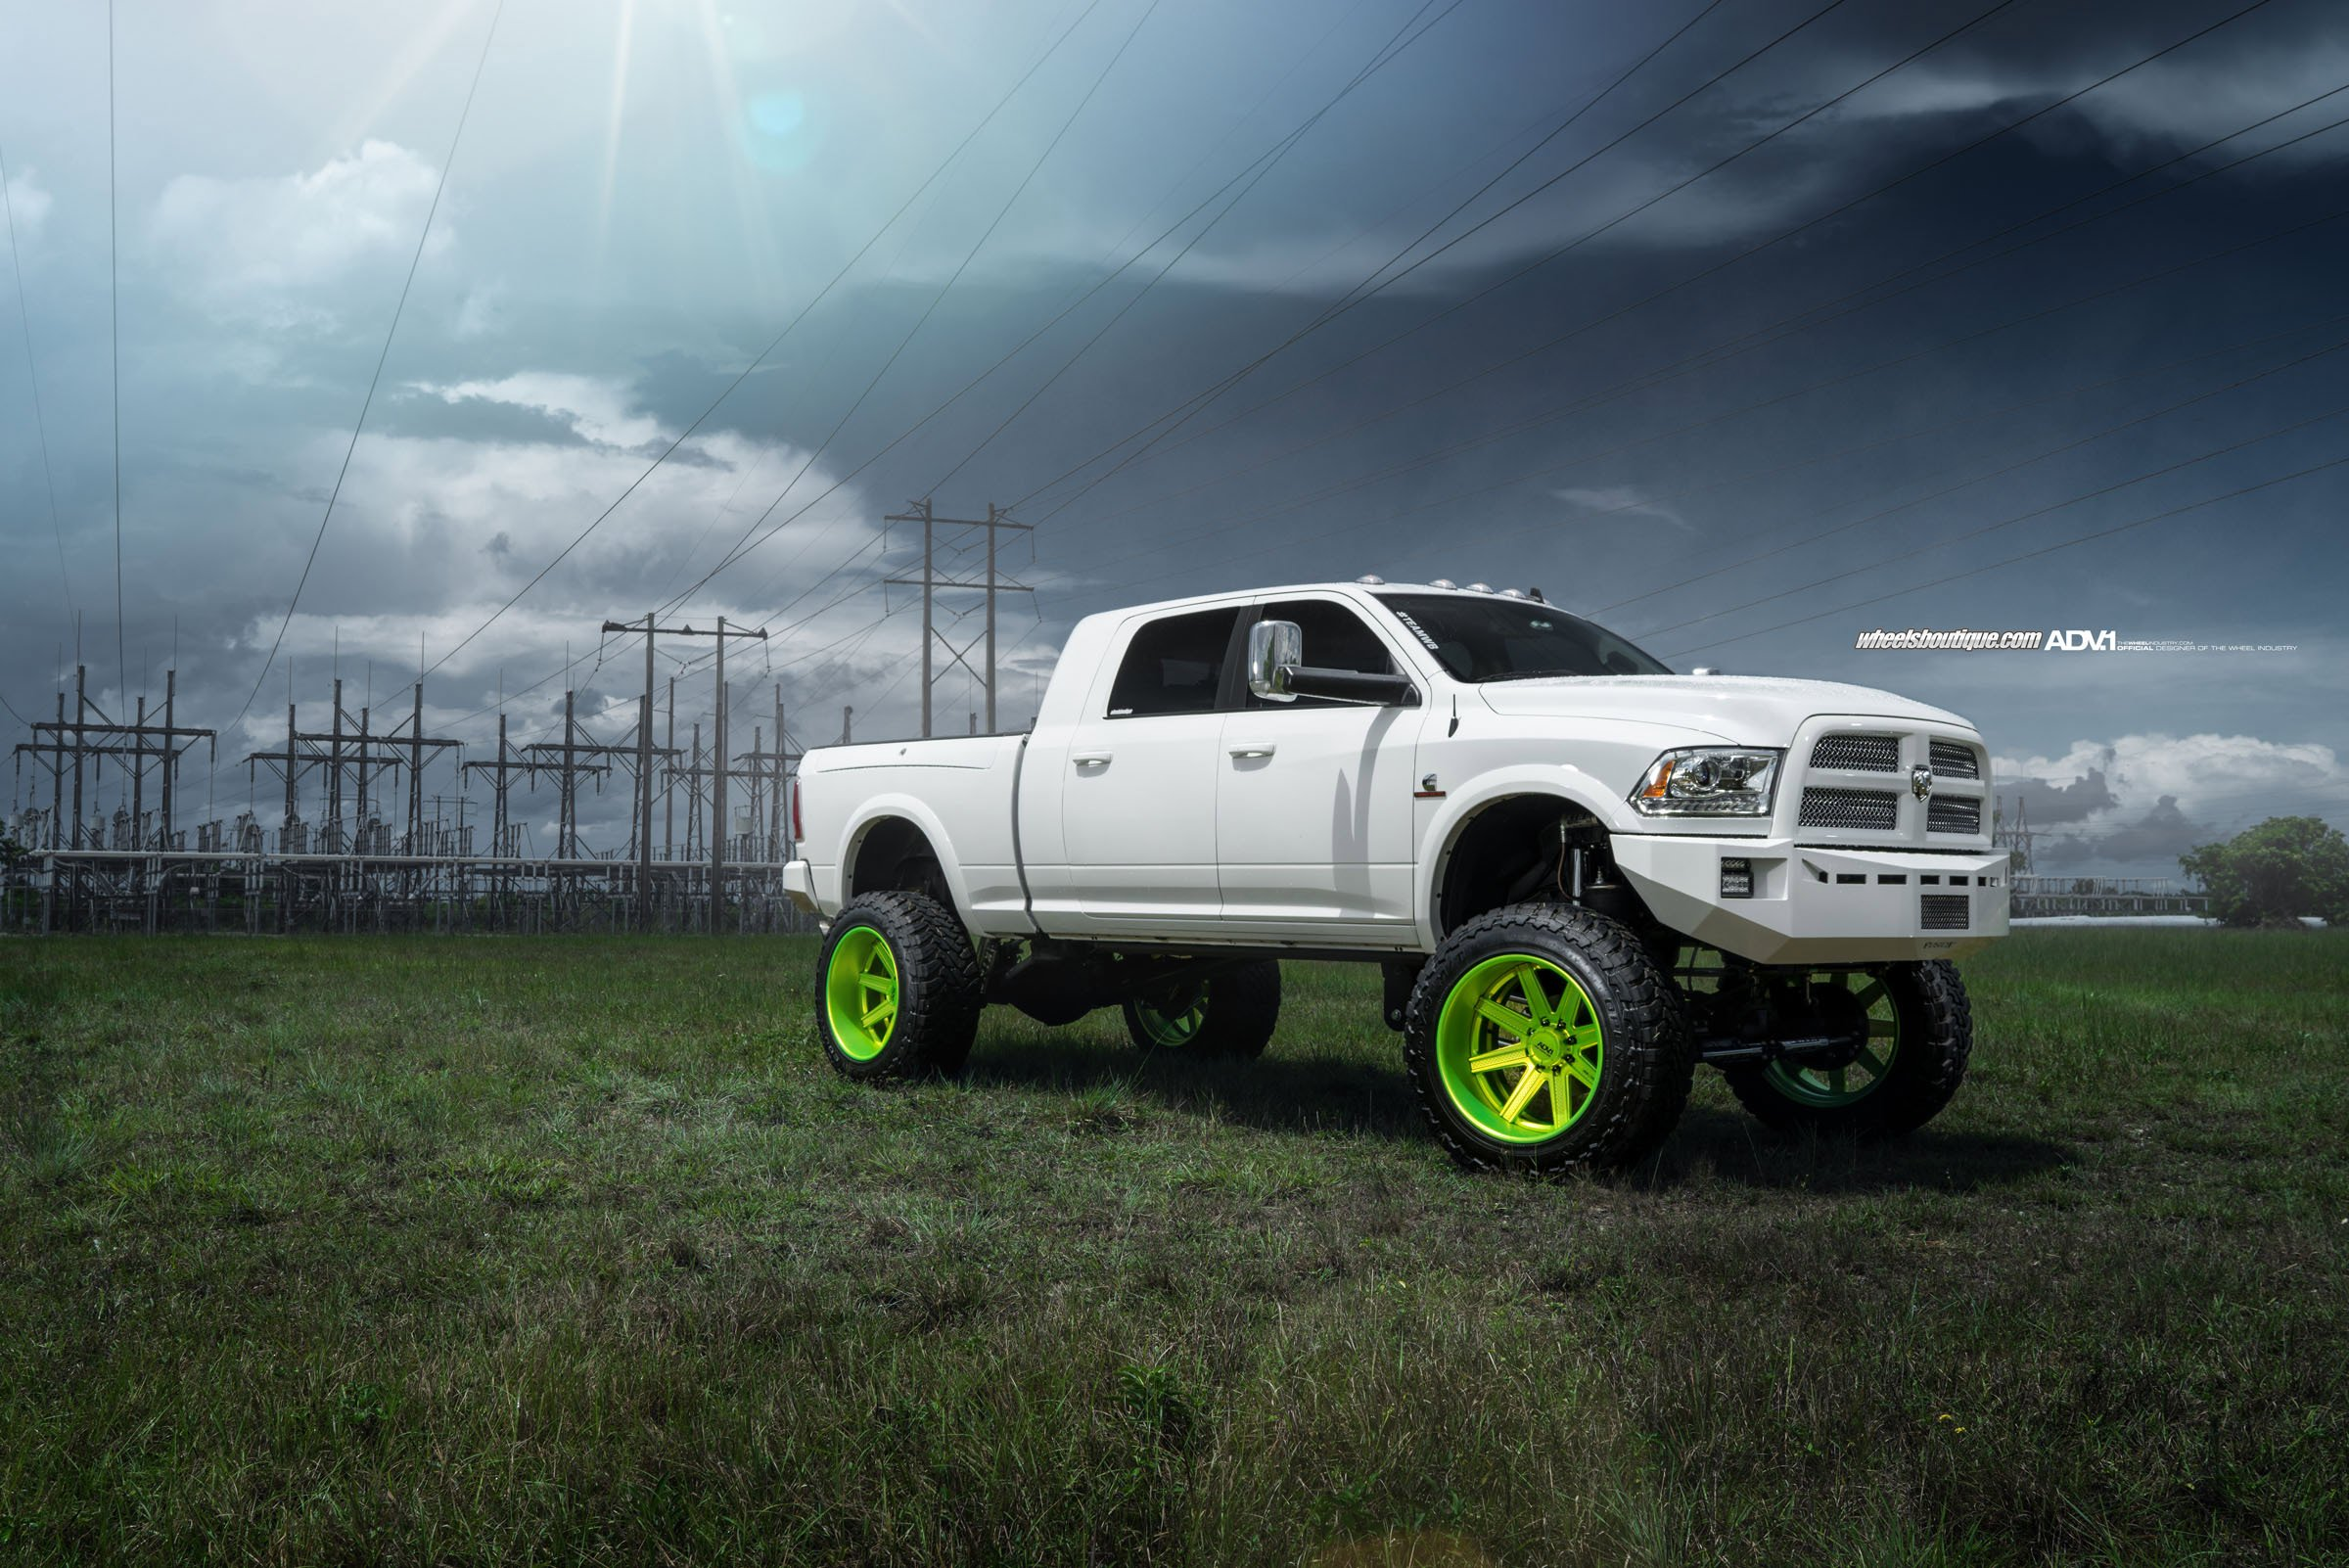 Adv 1 Wheels Gallery Dodge Ram 2500 Hd Truck Pickup White Truck Colored Wheels 1049x700 Download Hd Wallpaper Wallpapertip